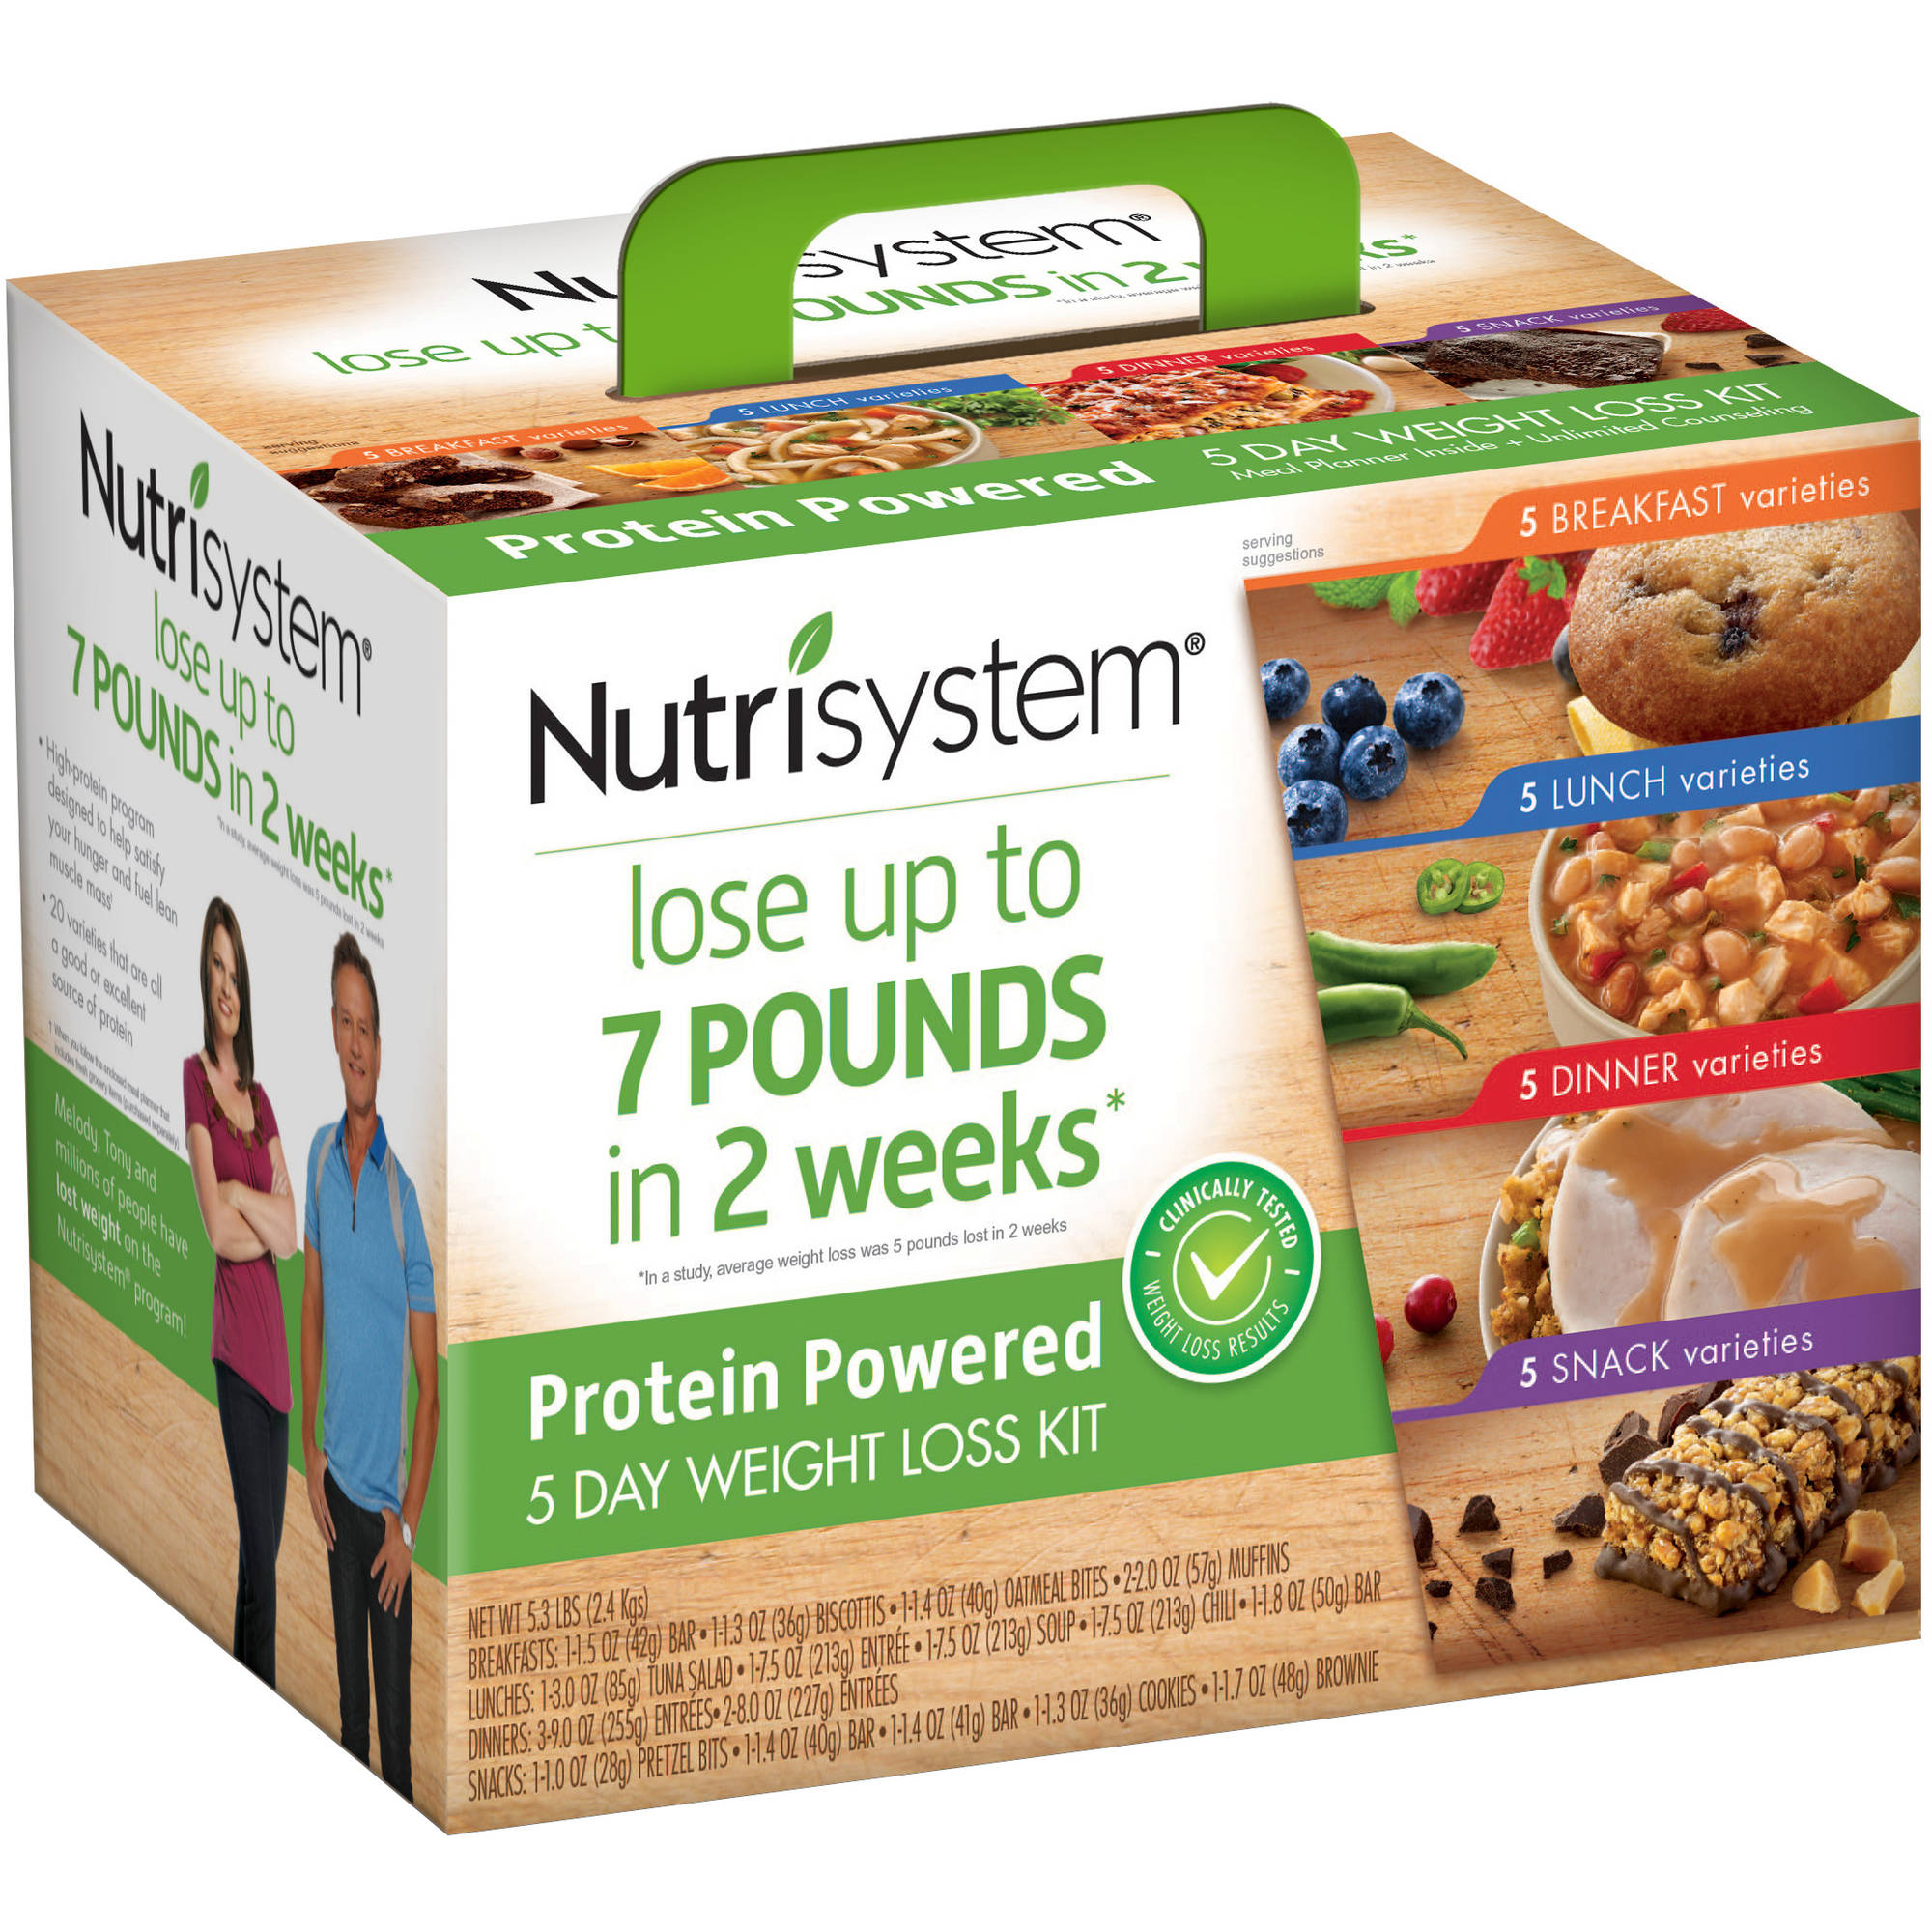 Nutrisystem Protein Powered 5 Day Weight Loss Kit, 5.3 lbs